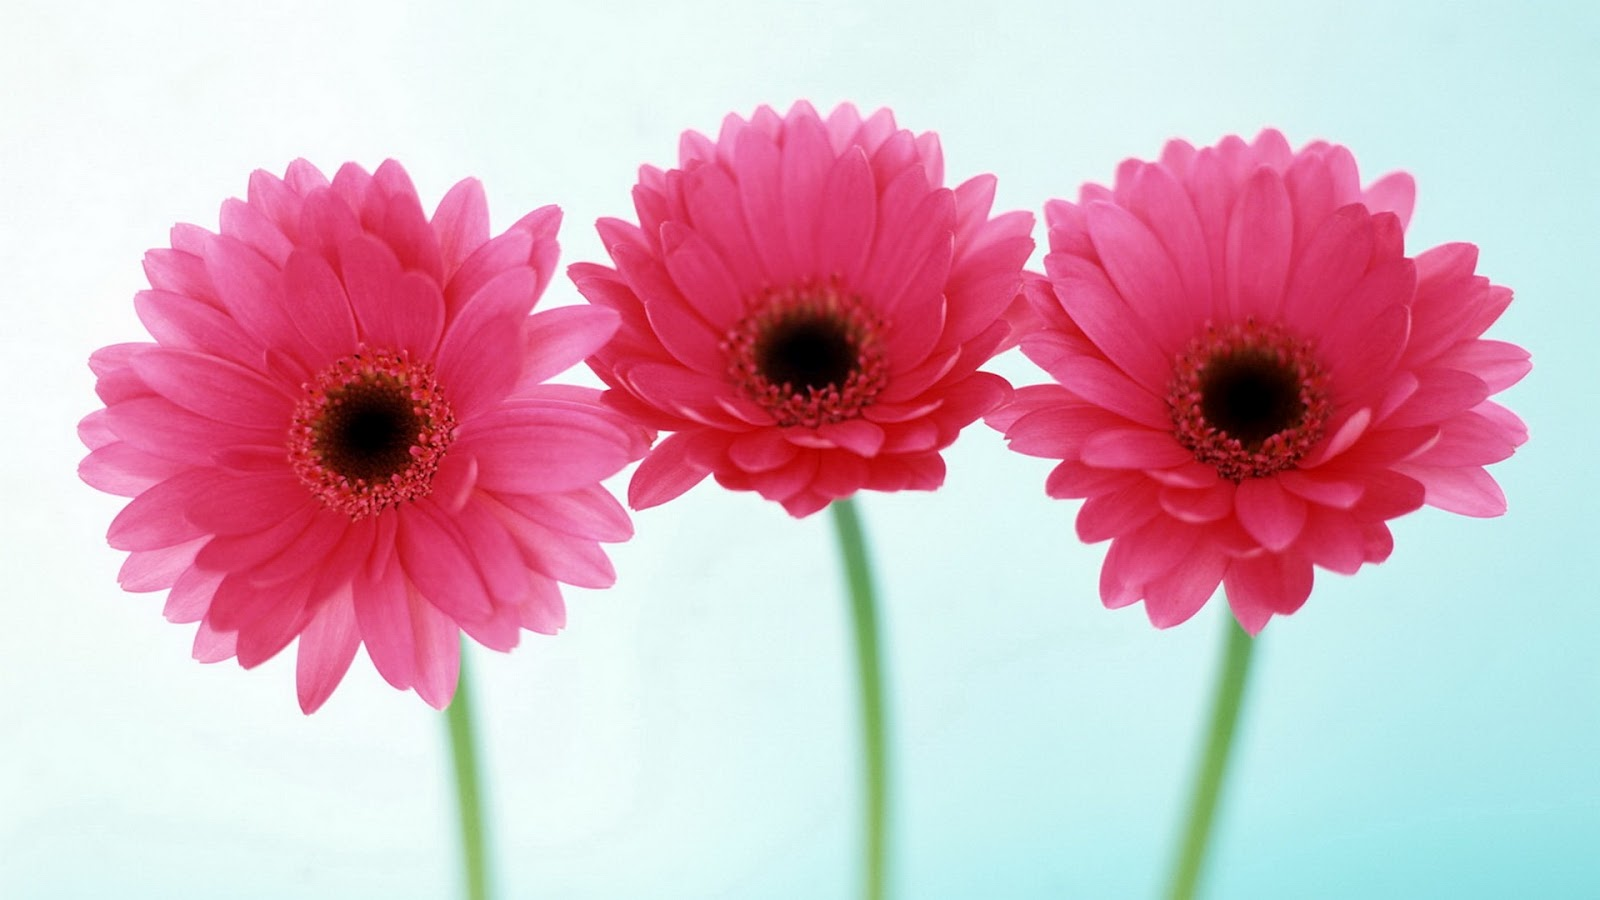 Flowers for flower lovers hd flowers wallpapers for Floral wallpaper for walls